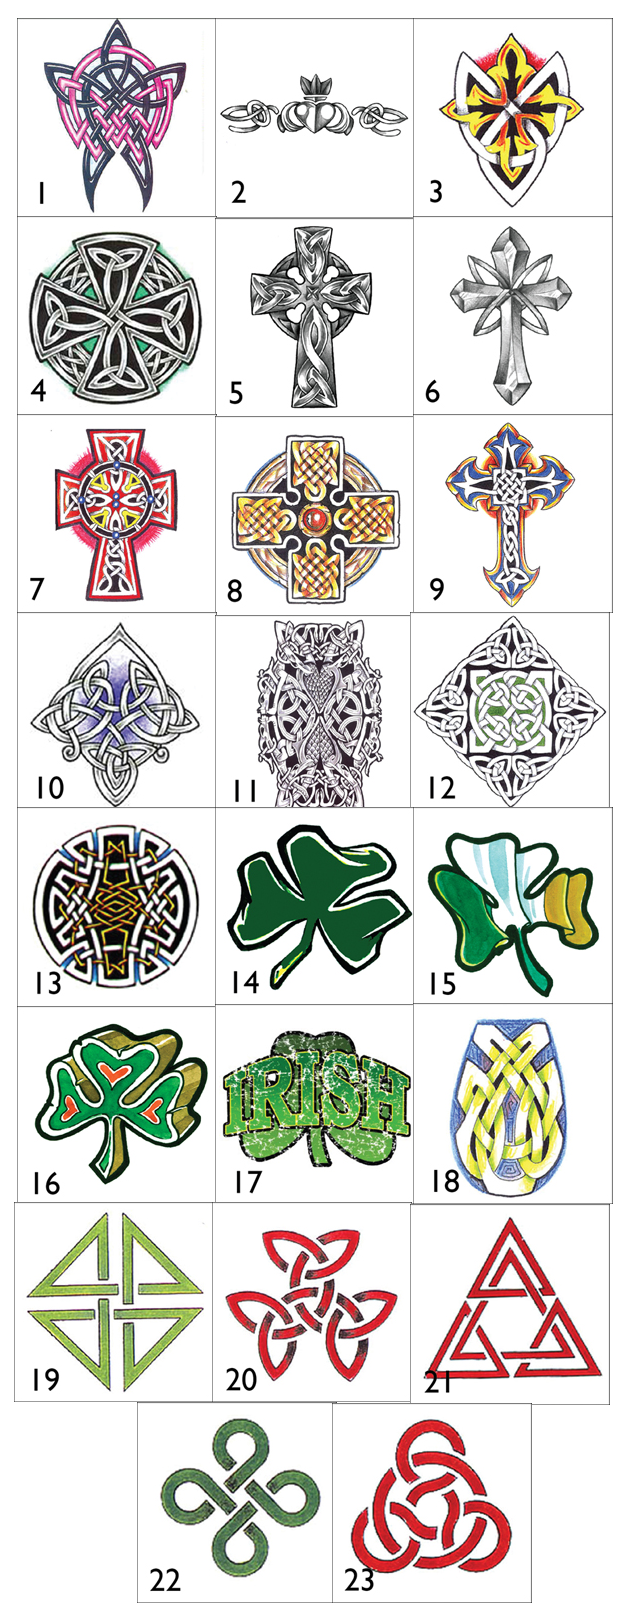 Celtic Crosses And Their Meanings